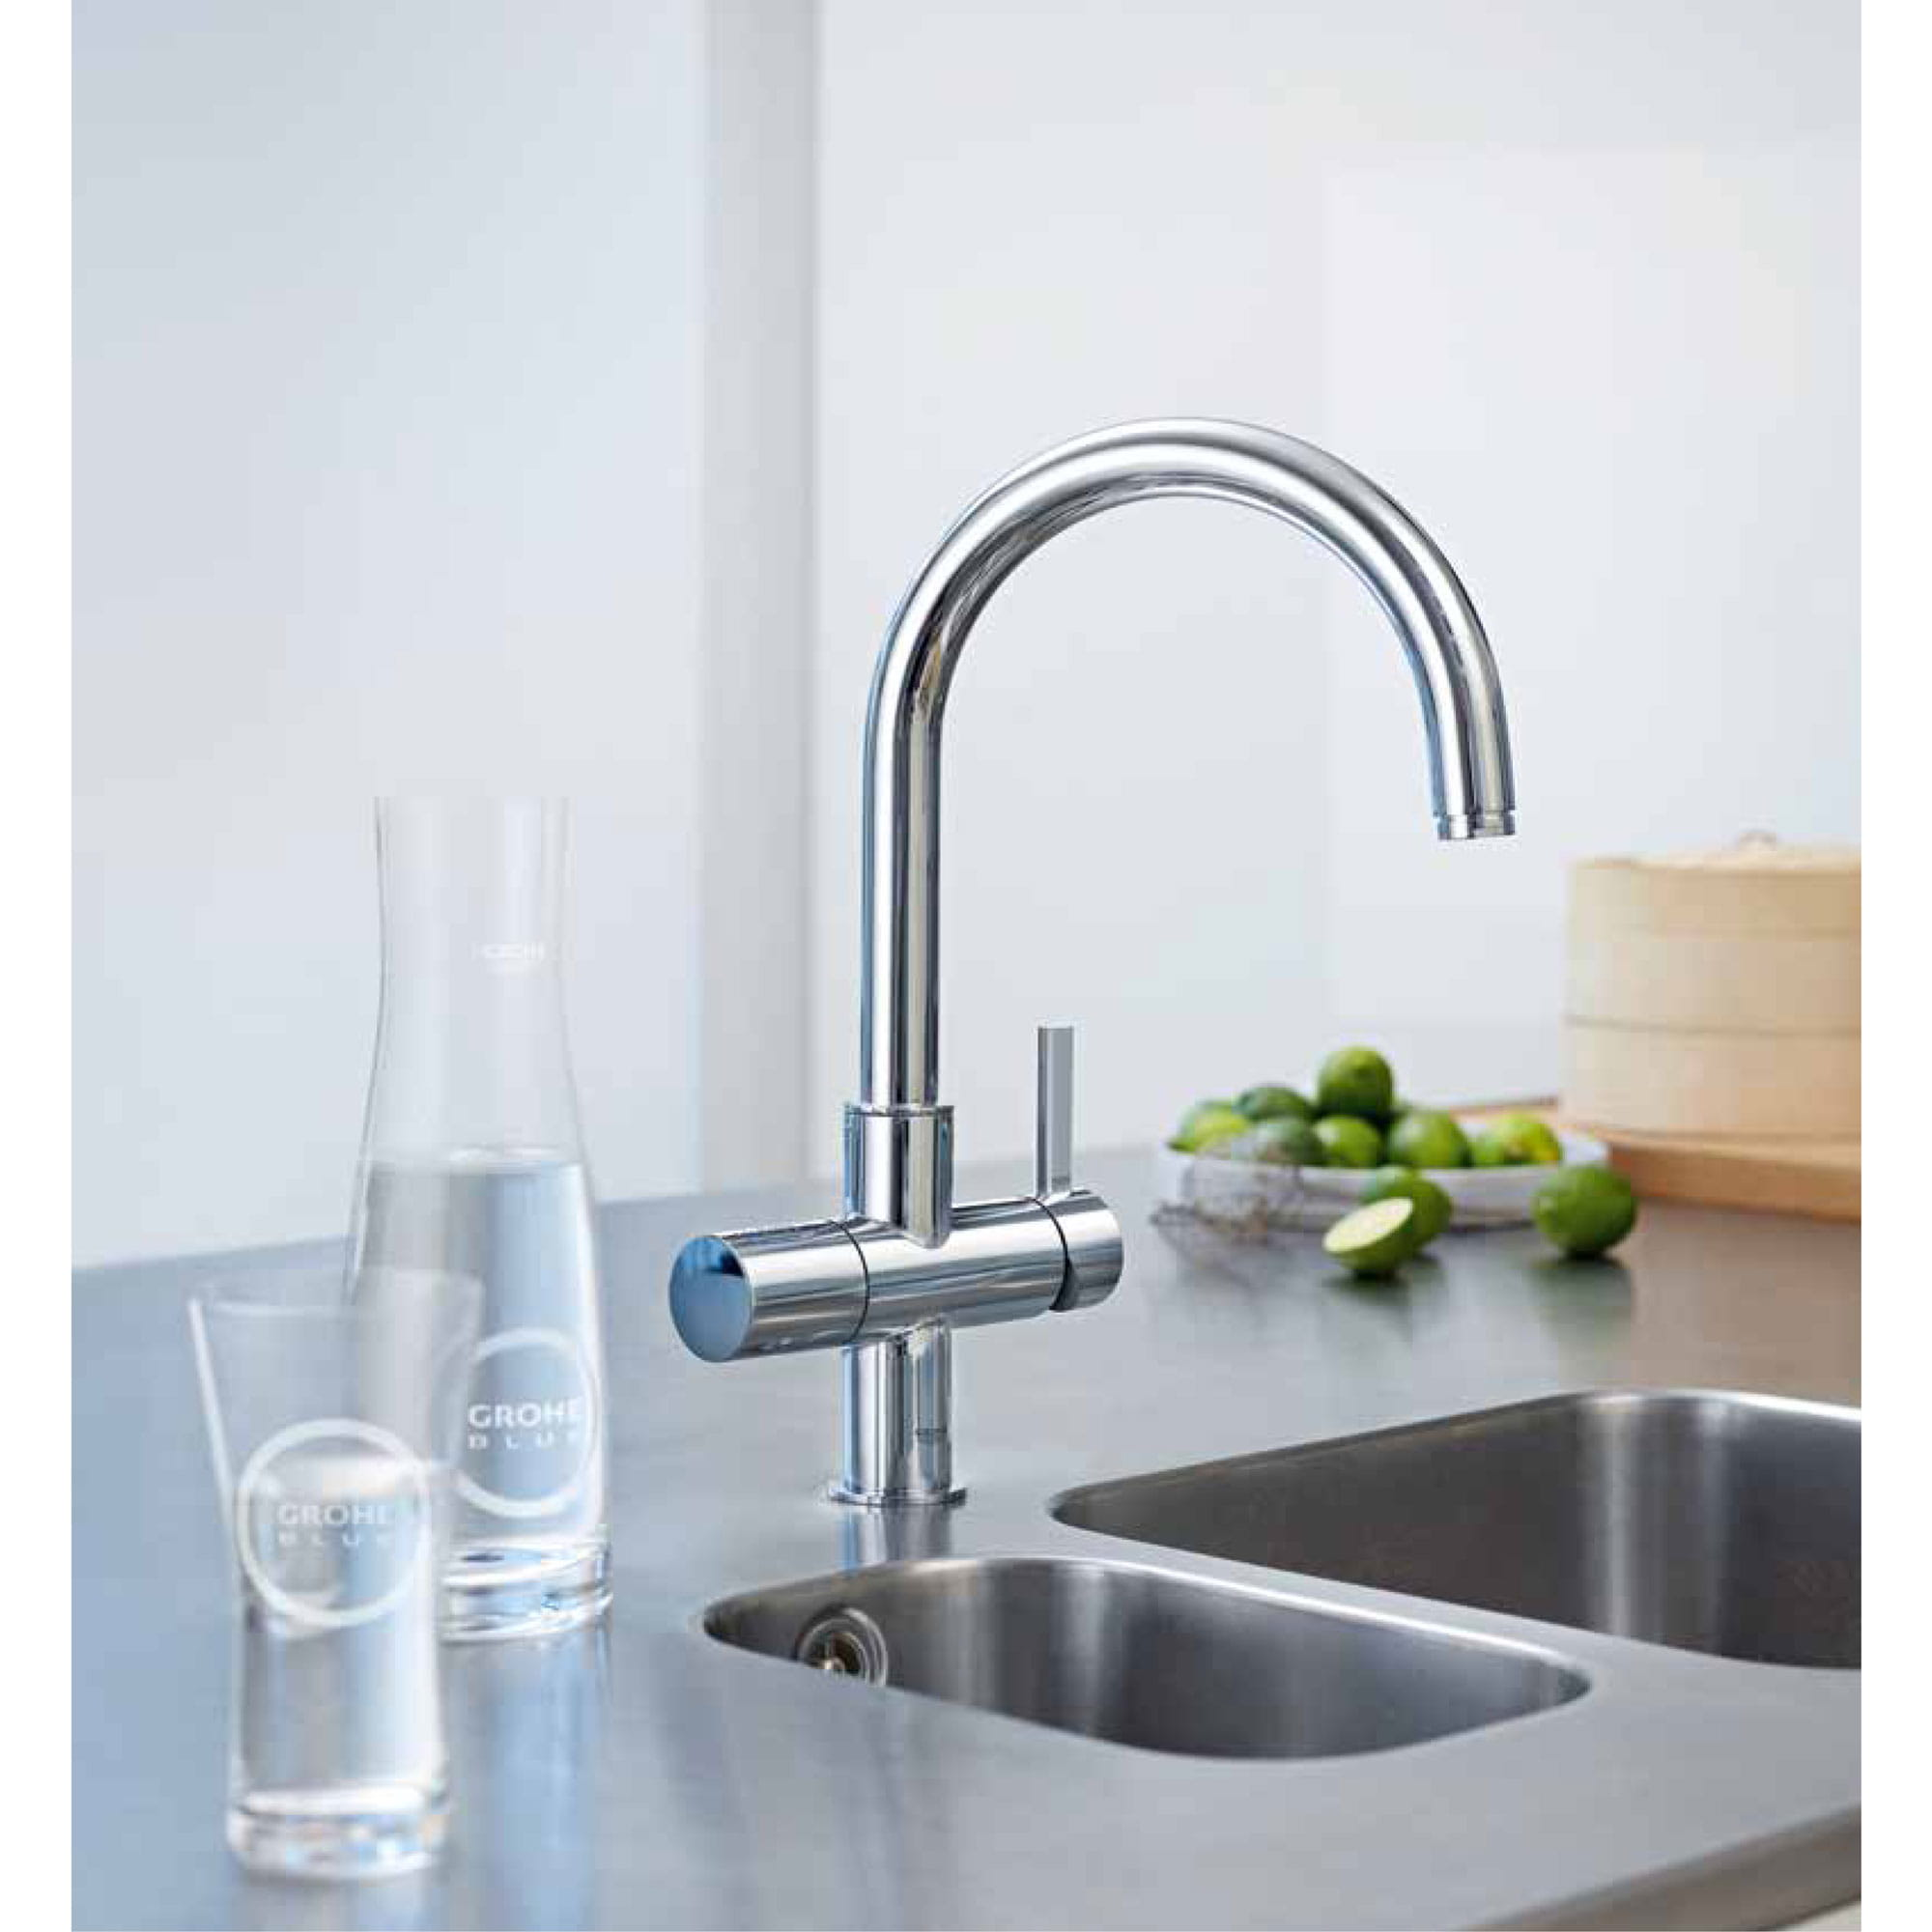 faucet with GROHE glasses